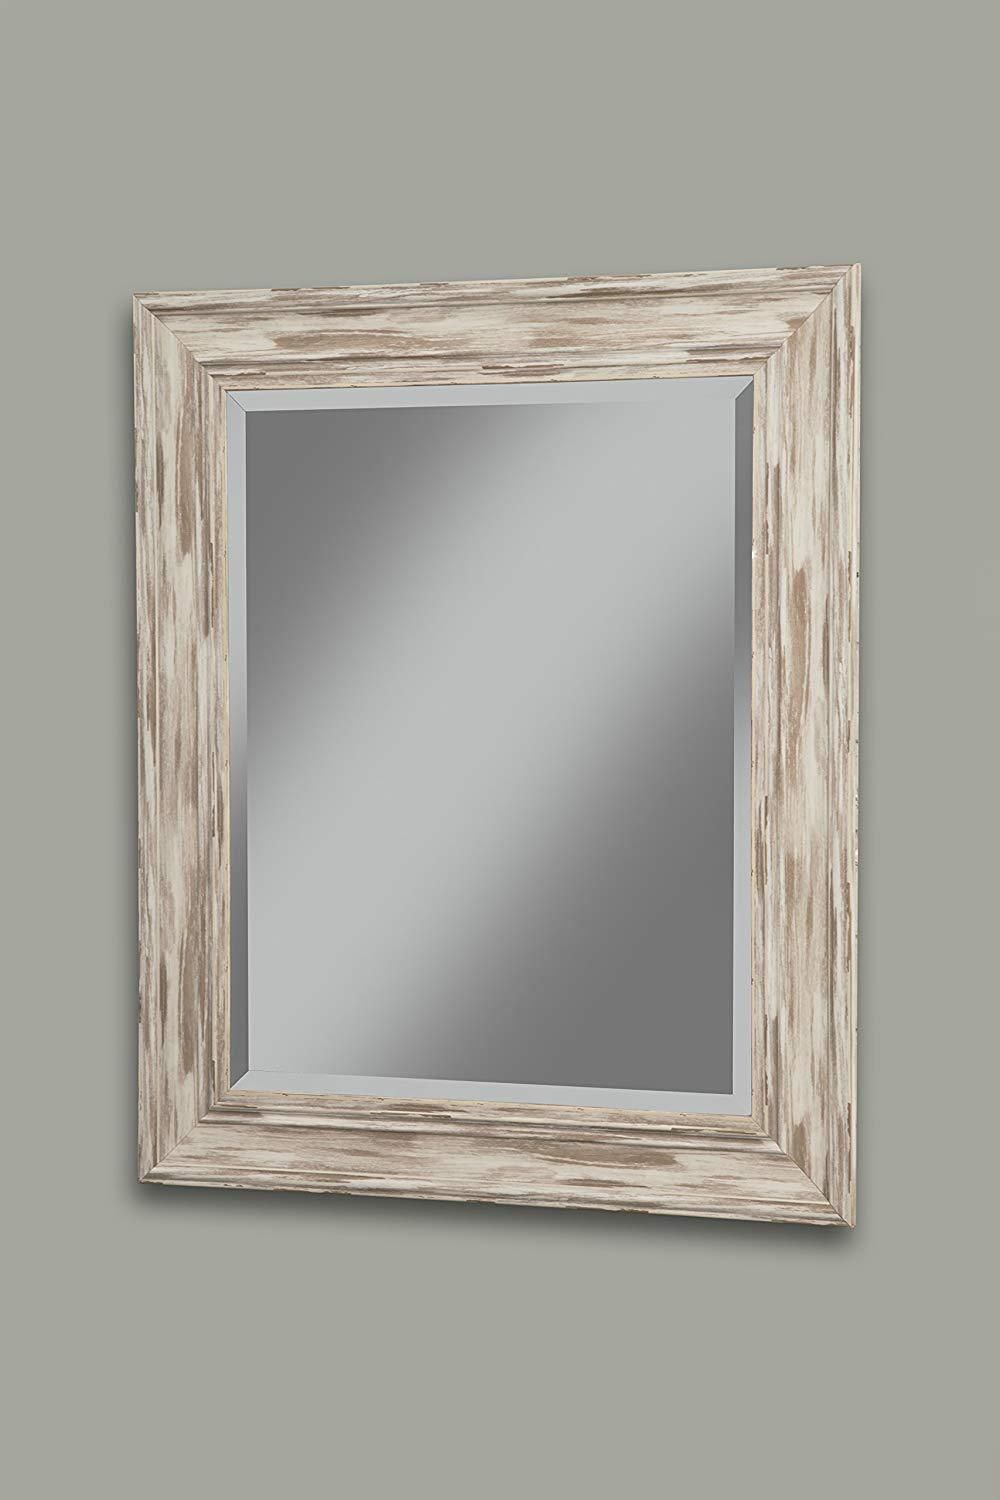 Polystyrene Framed Wall Mirror With Sharp Edges, Antique With Regard To Bartolo Accent Mirrors (Image 12 of 20)